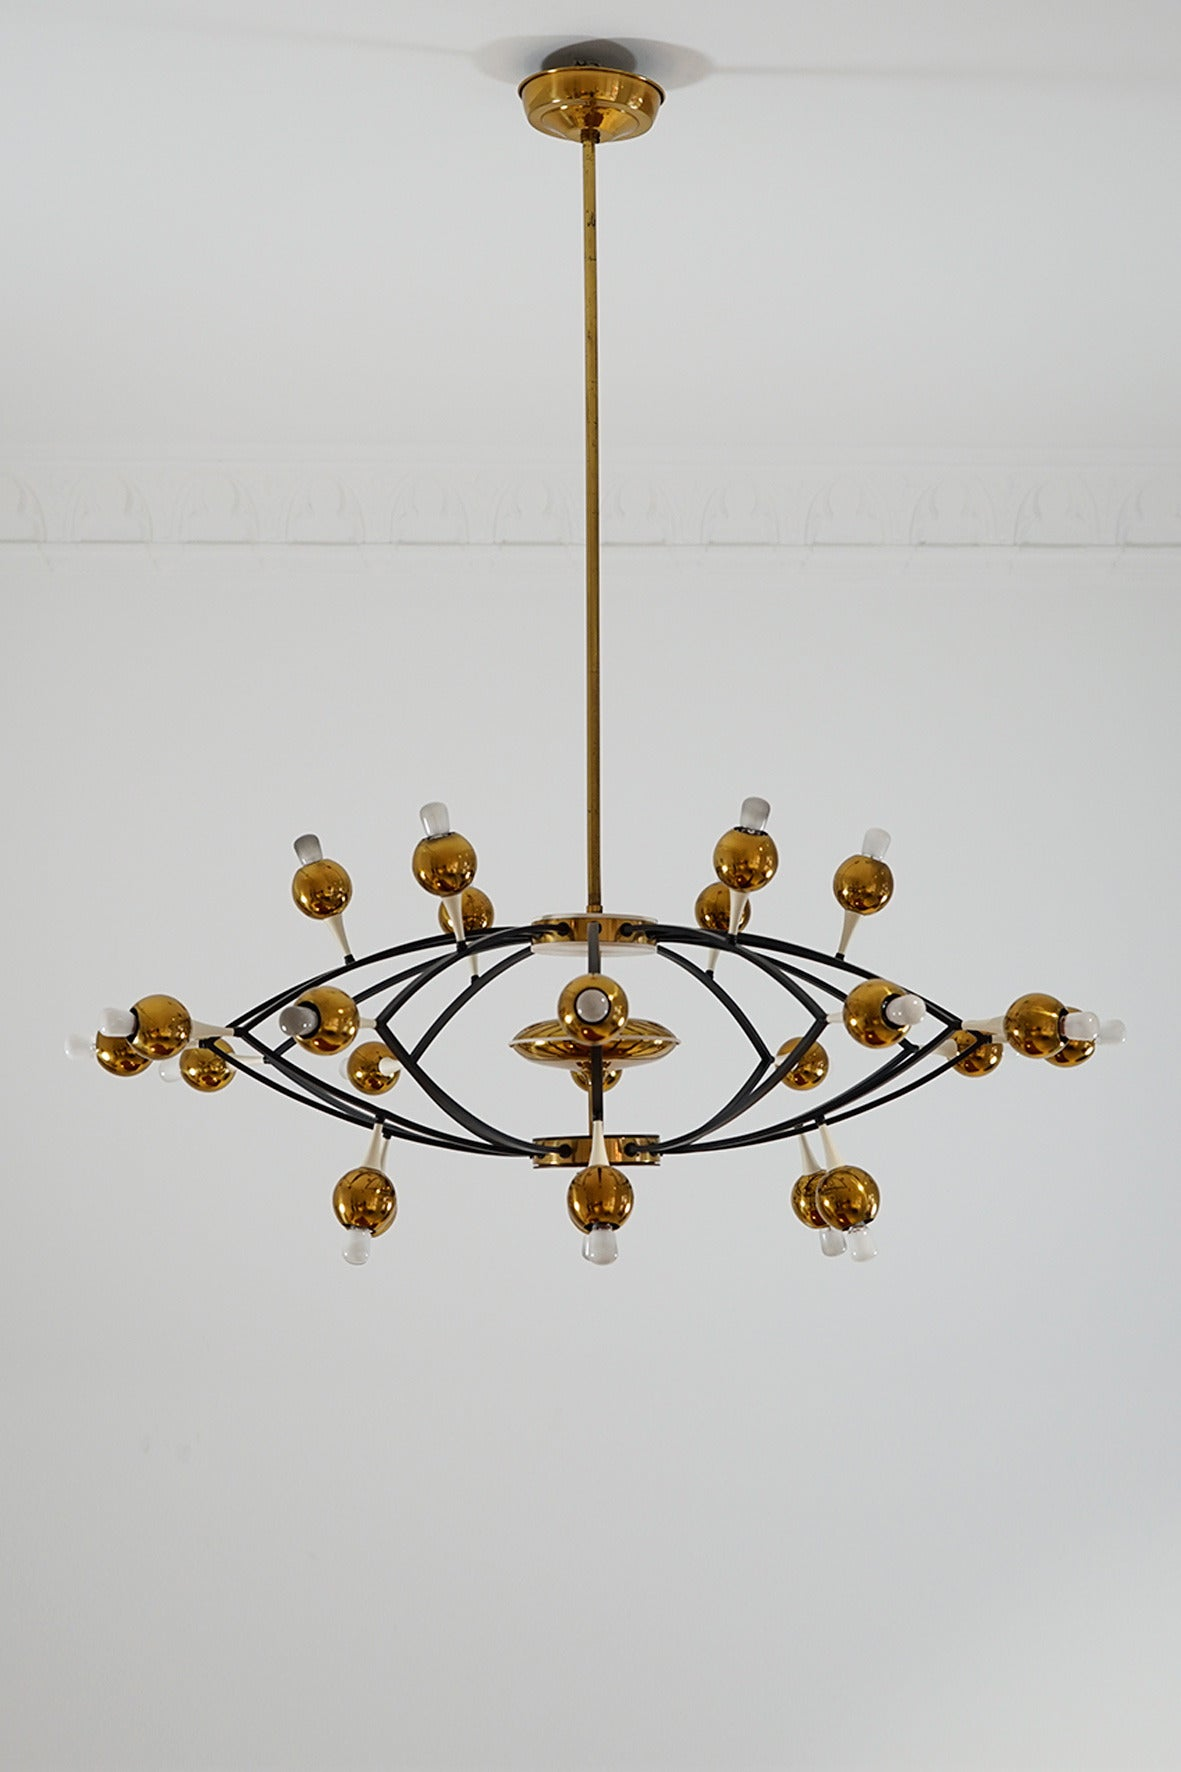 Huge exceptional chandelier by stilnovo italy circa 1950 for sale at 1stdibs - Circa lighting chandeliers ...